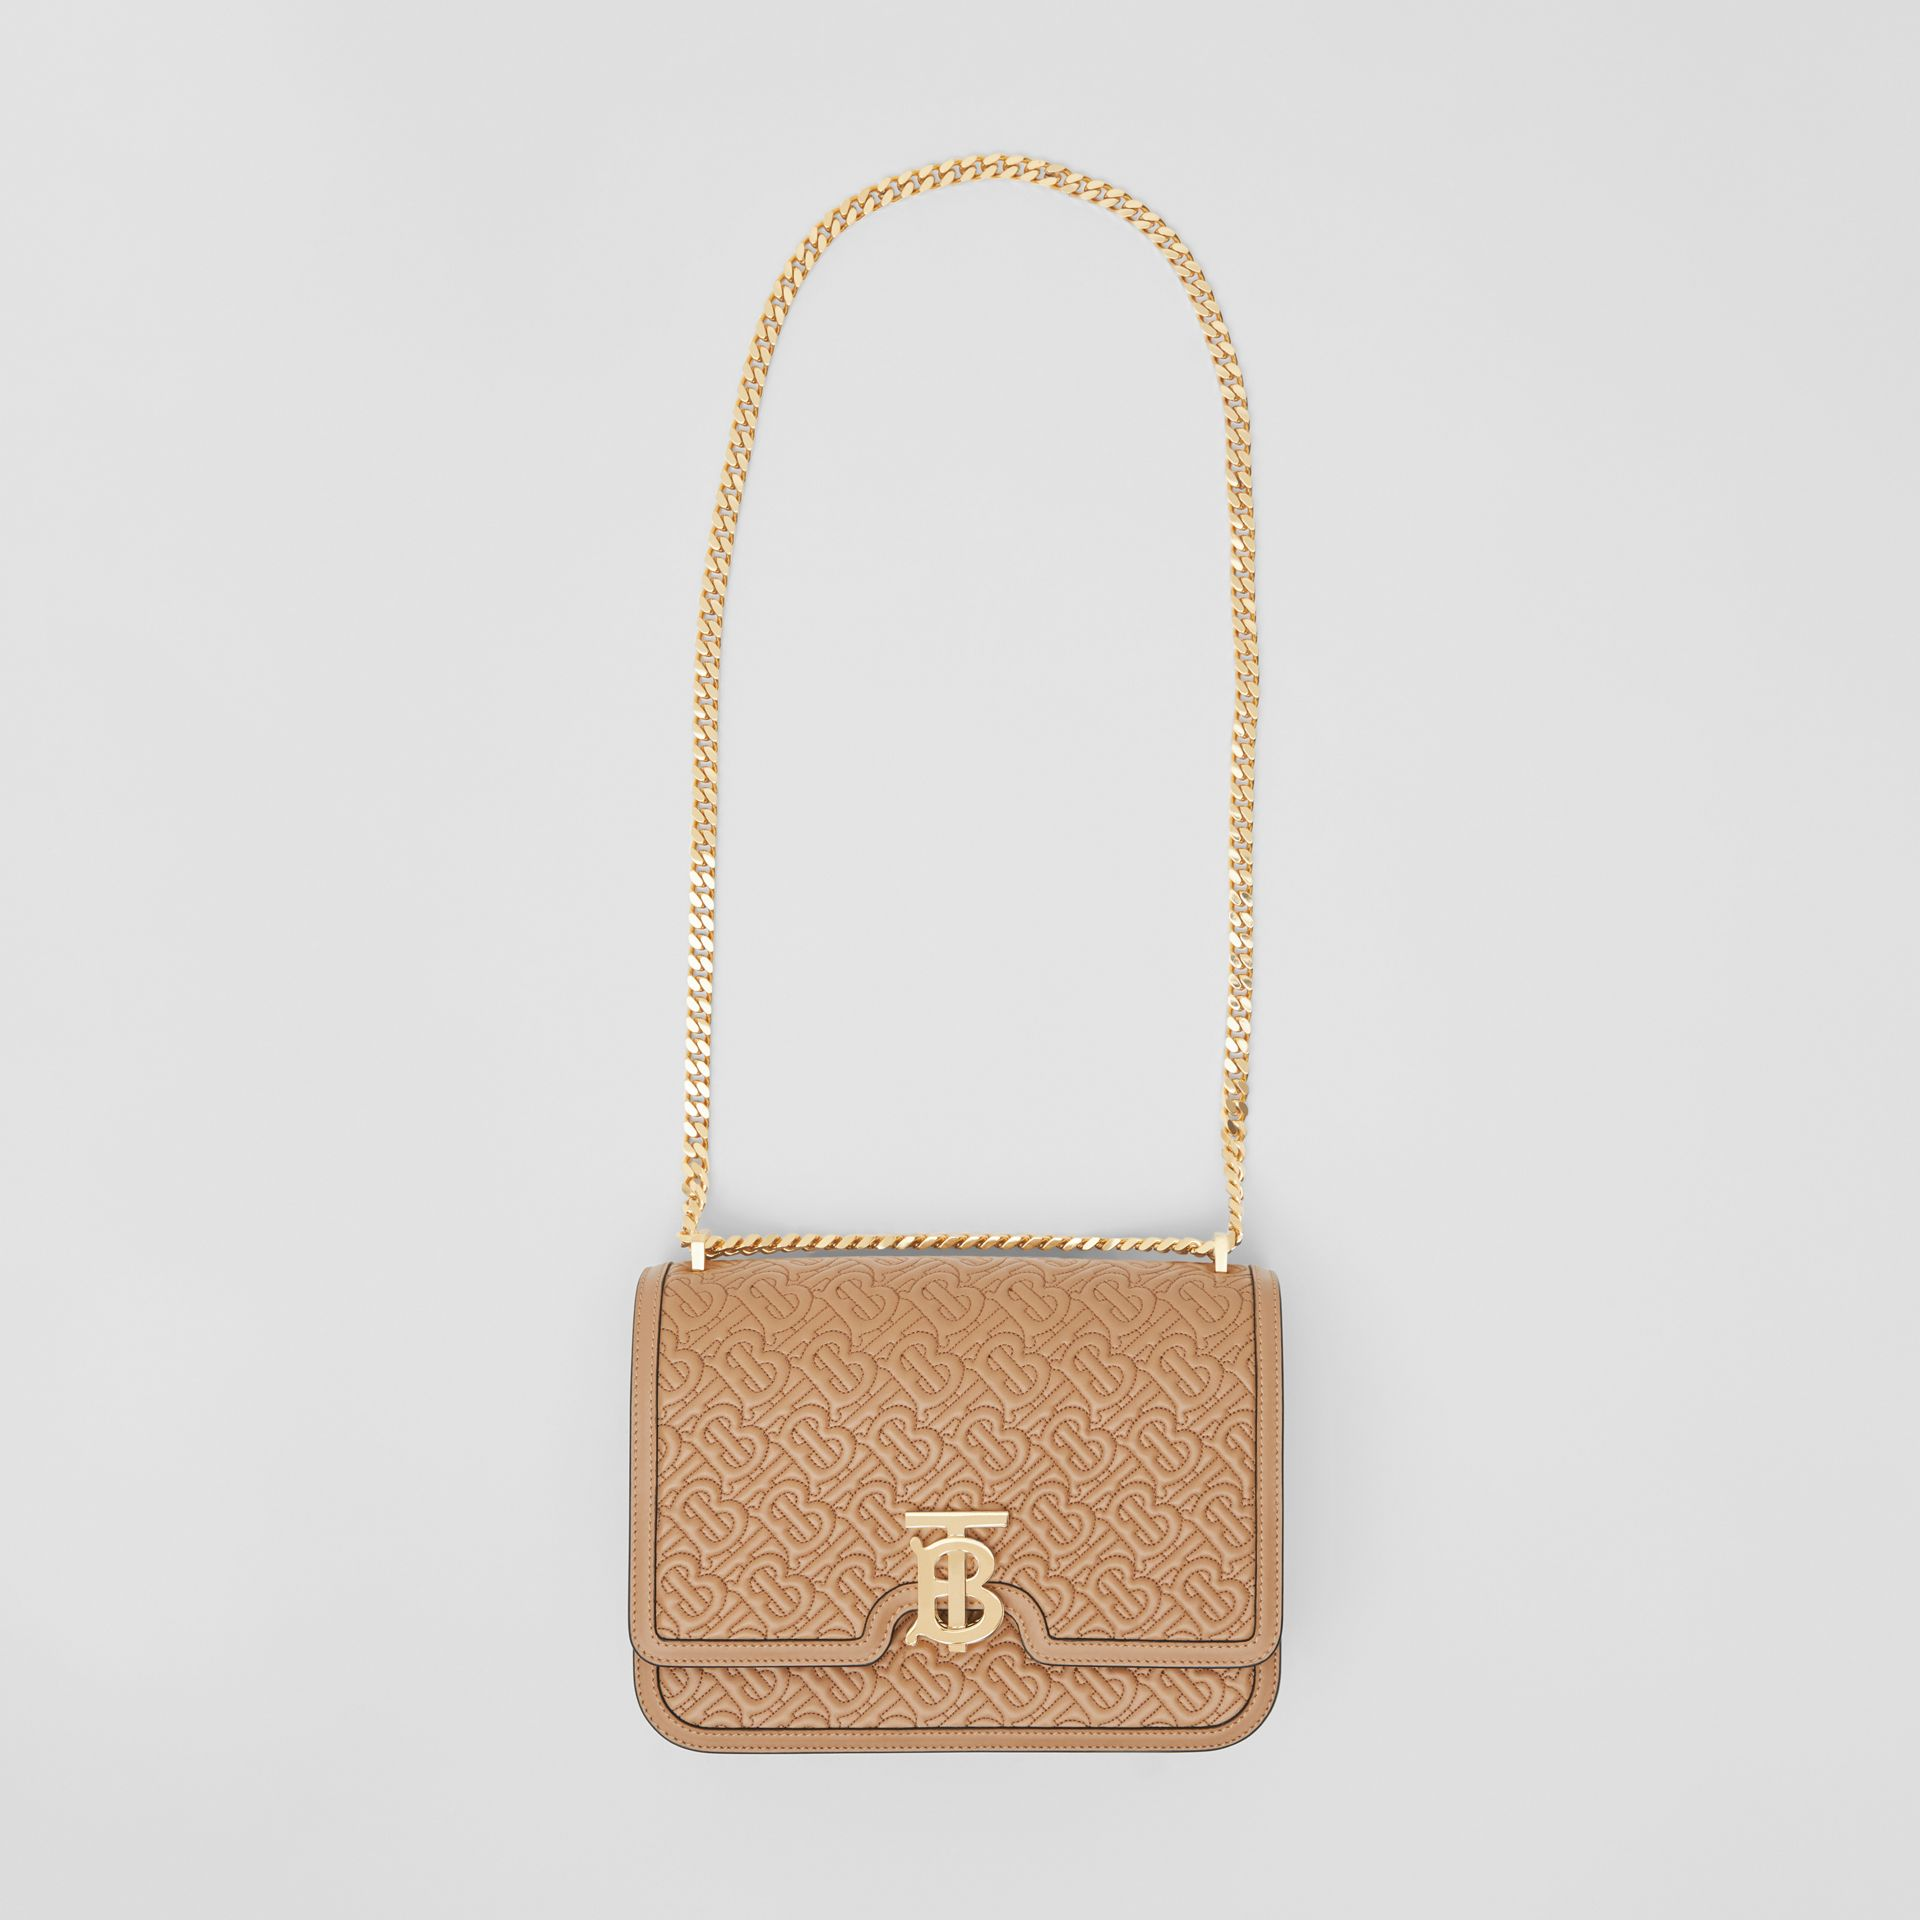 Medium Quilted Monogram Lambskin TB Bag in Honey - Women | Burberry Hong Kong - gallery image 3